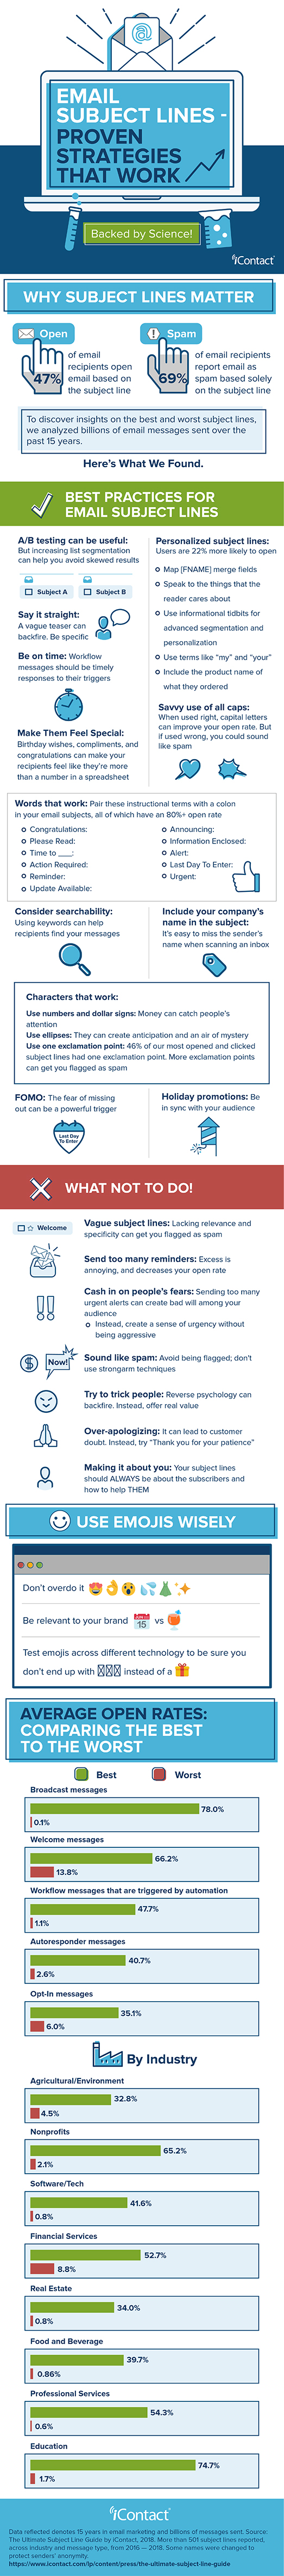 20 Subject Line Do's and Don'ts to Improve Your Email Open Rates